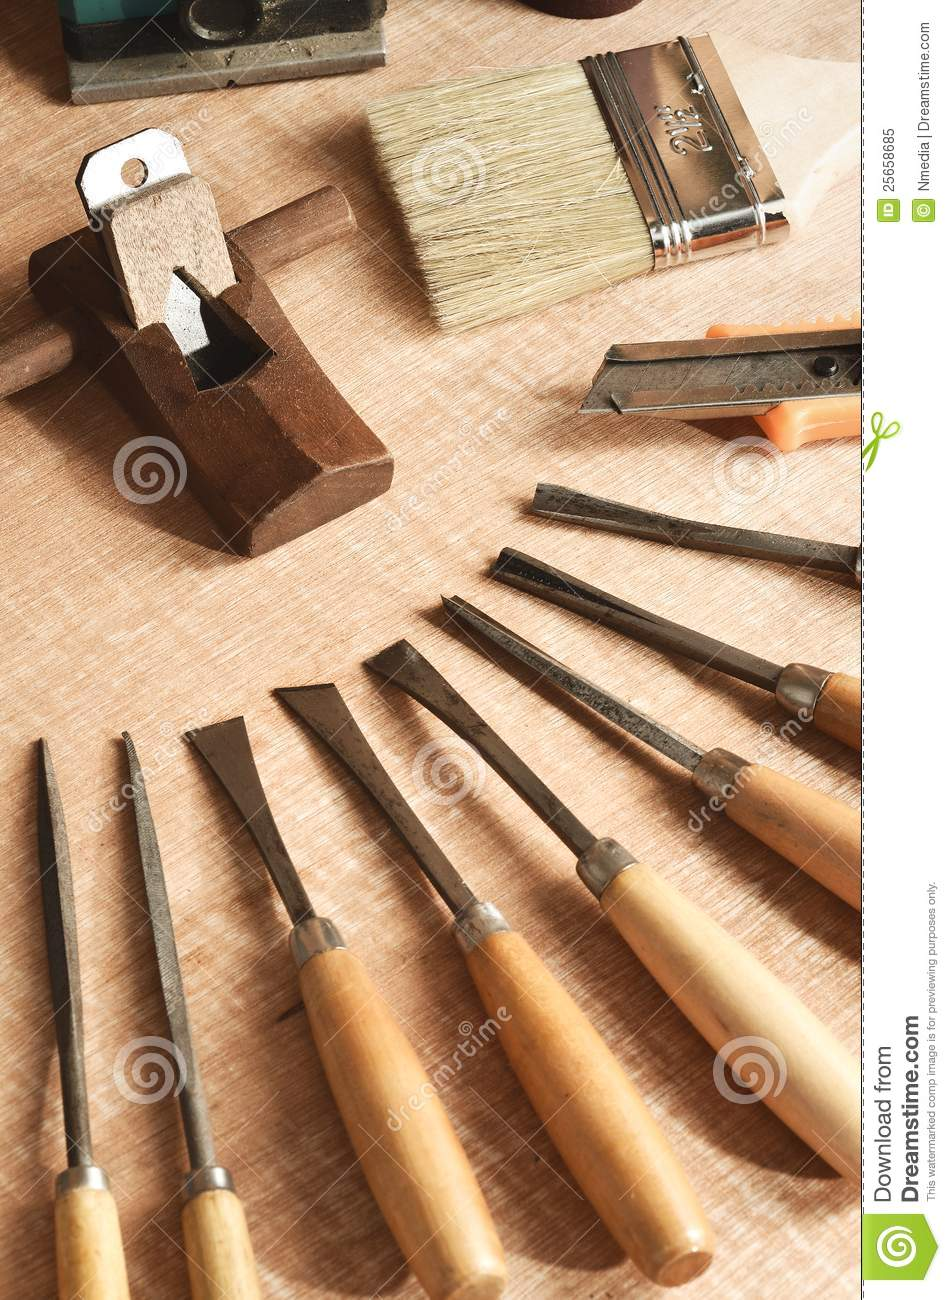 Wood Working Tools 01 Royalty Free Stock Photo - Image: 25658685